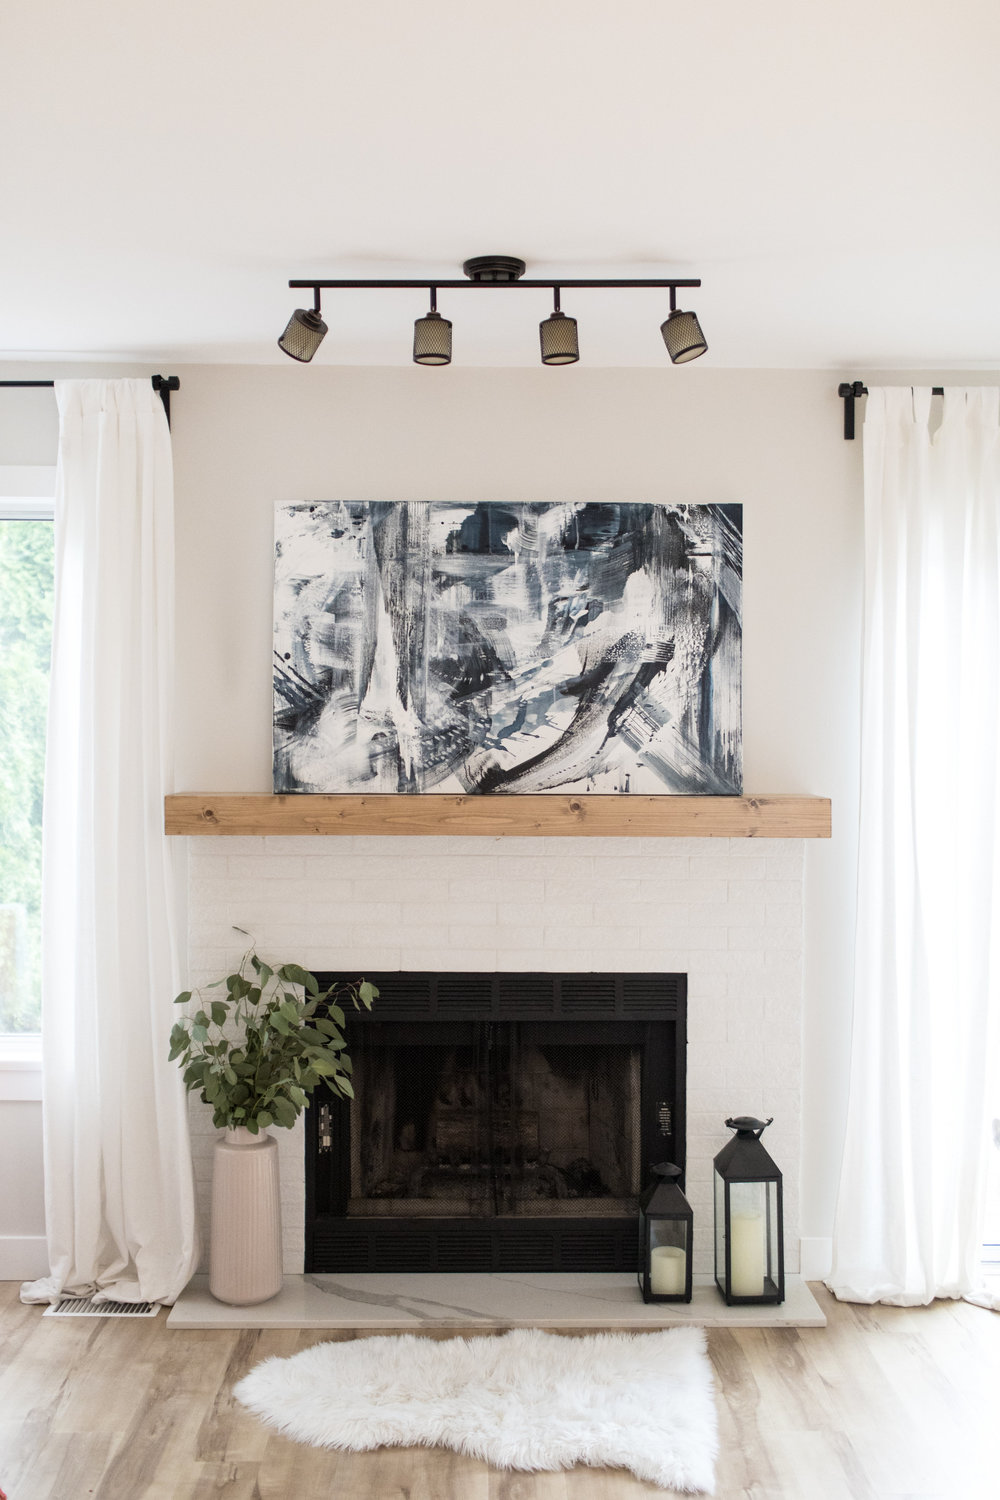 Dana-Mooney-Vancouver-Artist-Clashing-Waves-Styled-Fireplace.jpg